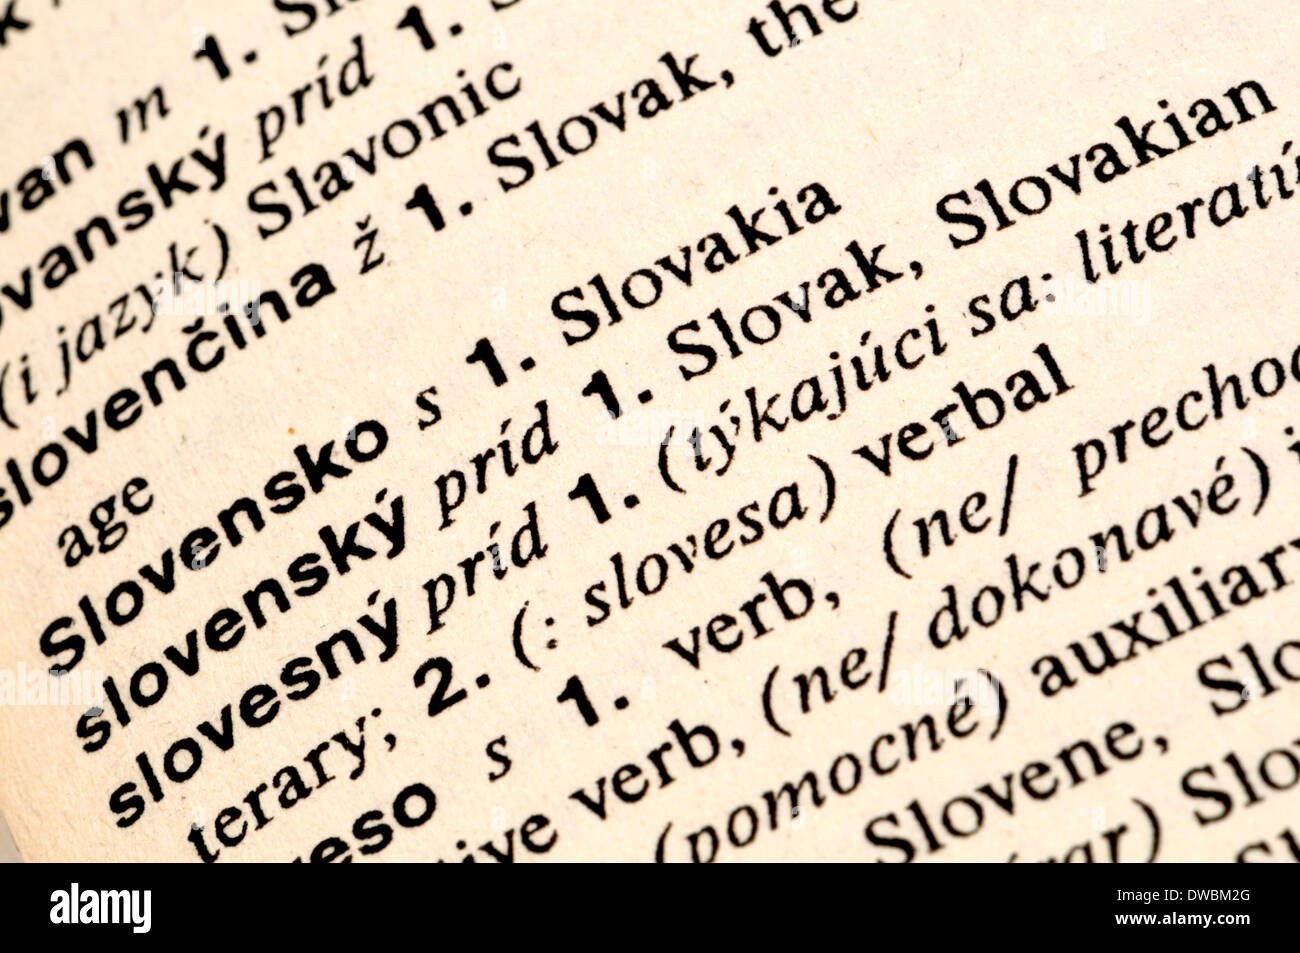 english slovak dictionary entries for slovak and slovakia stock photo 67254728 alamy. Black Bedroom Furniture Sets. Home Design Ideas